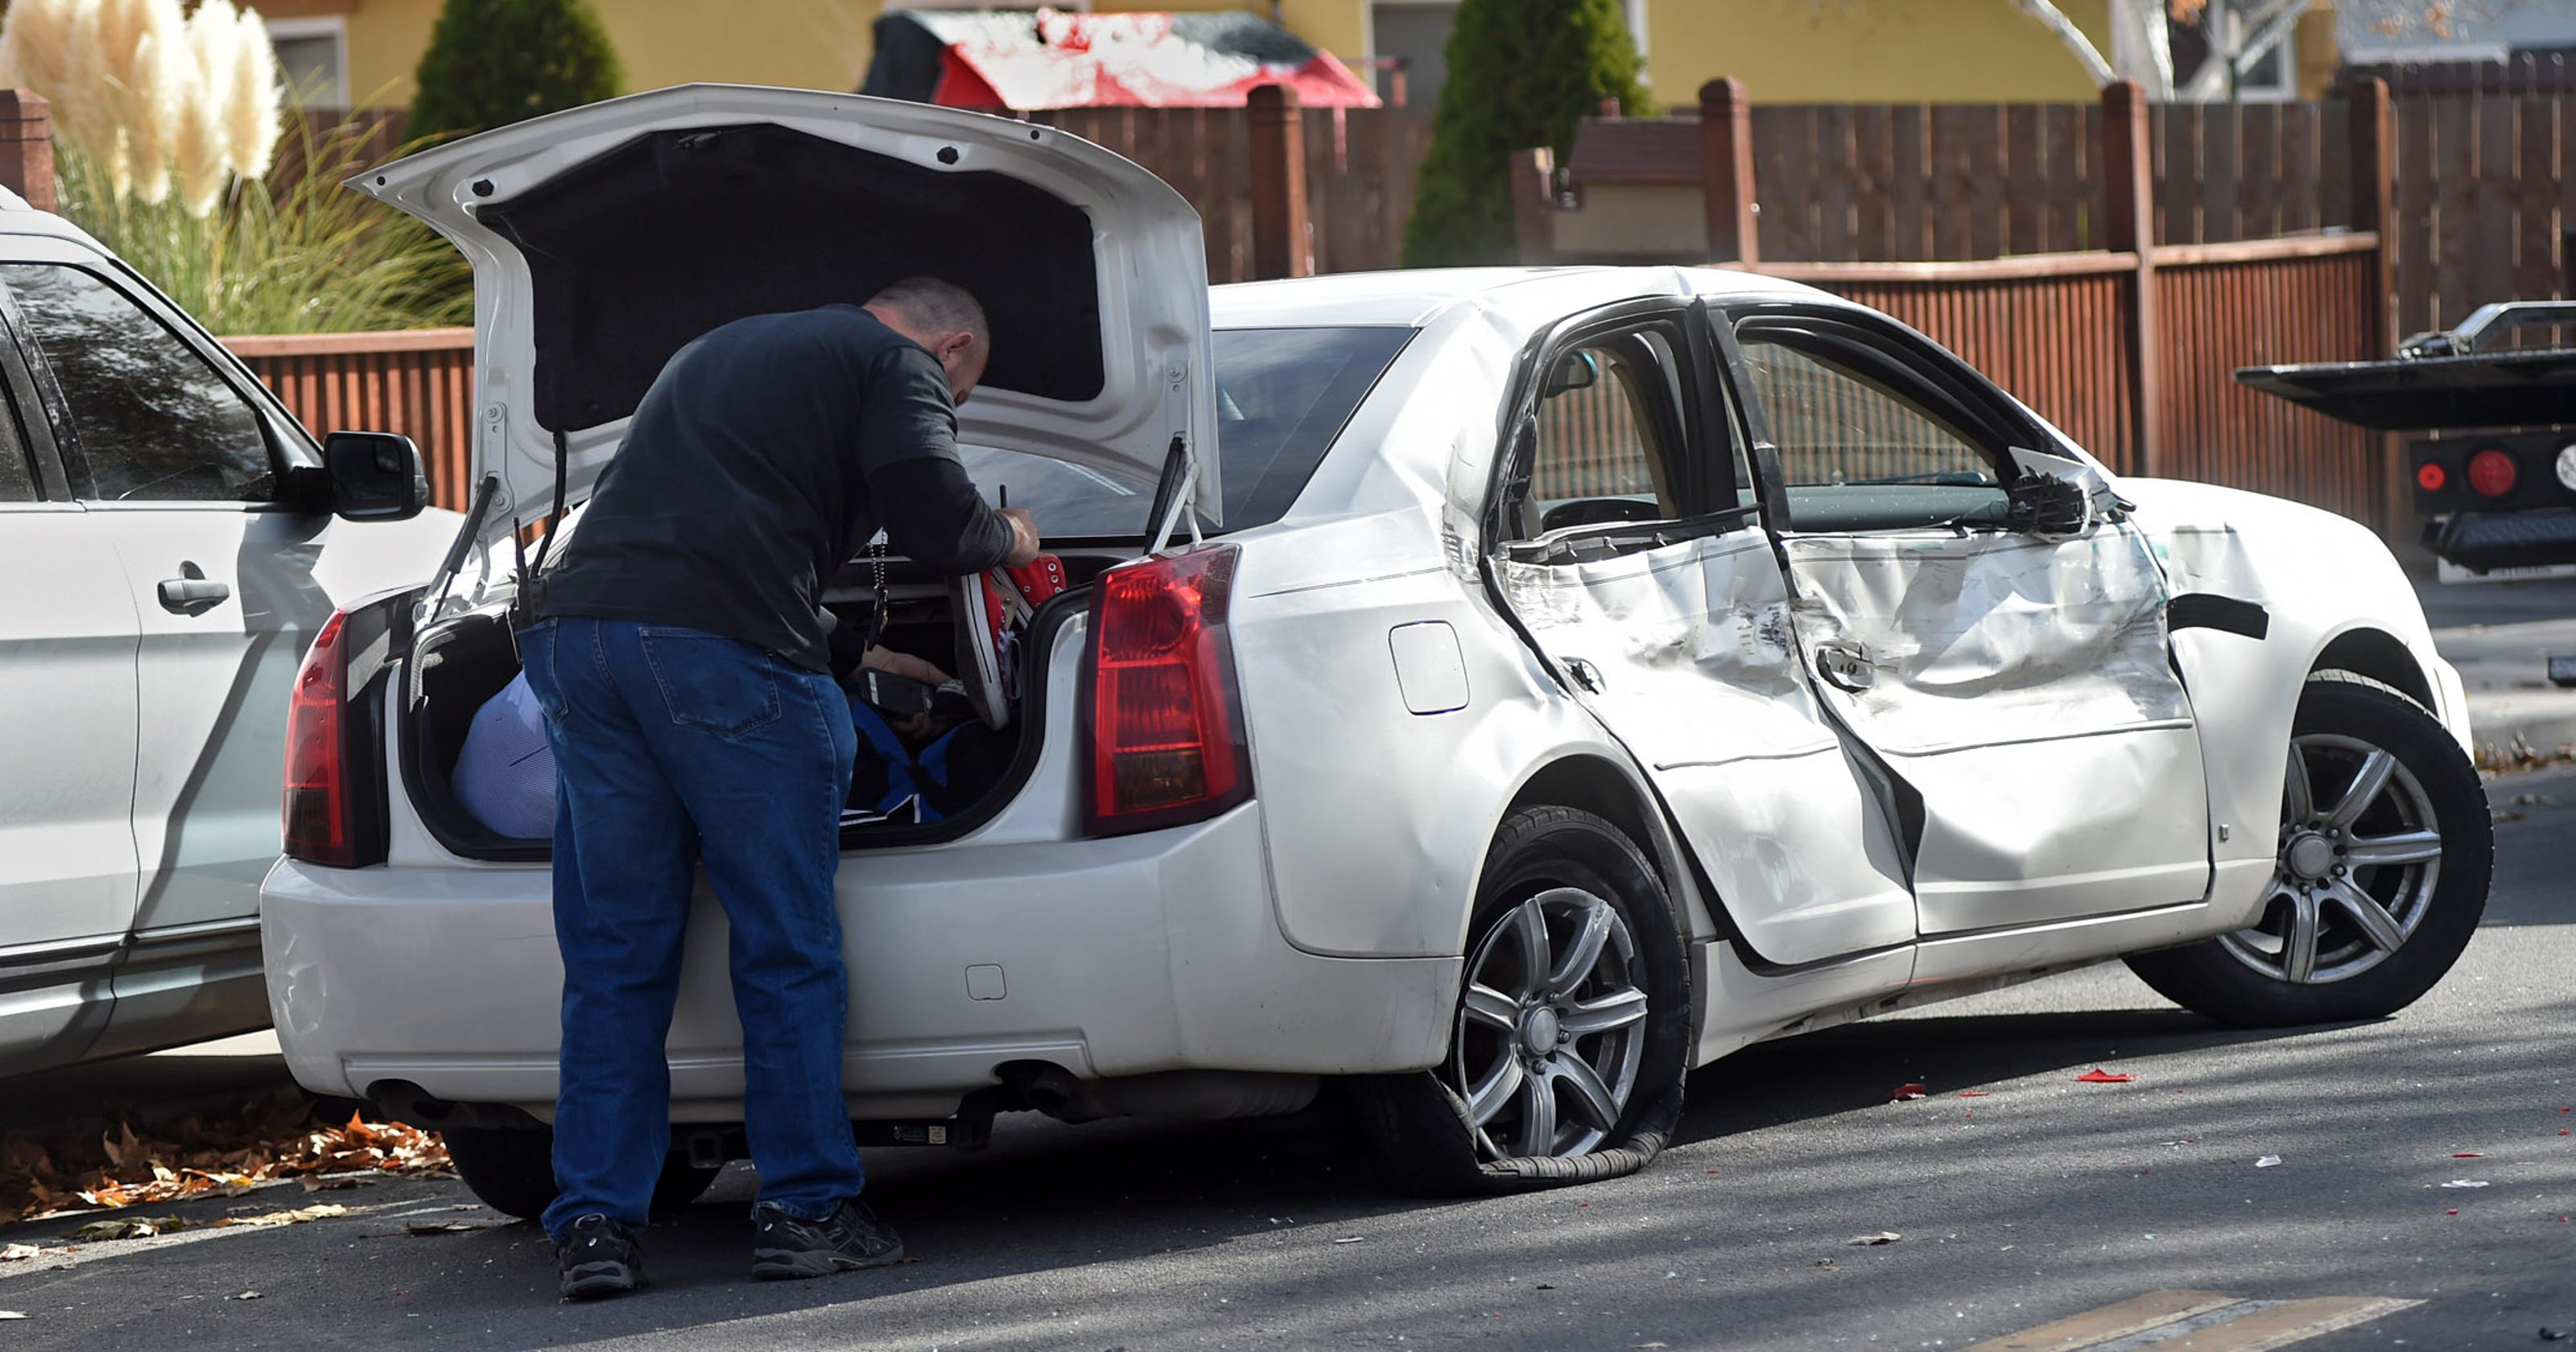 Crash, police activity close Sparks intersection temporarily